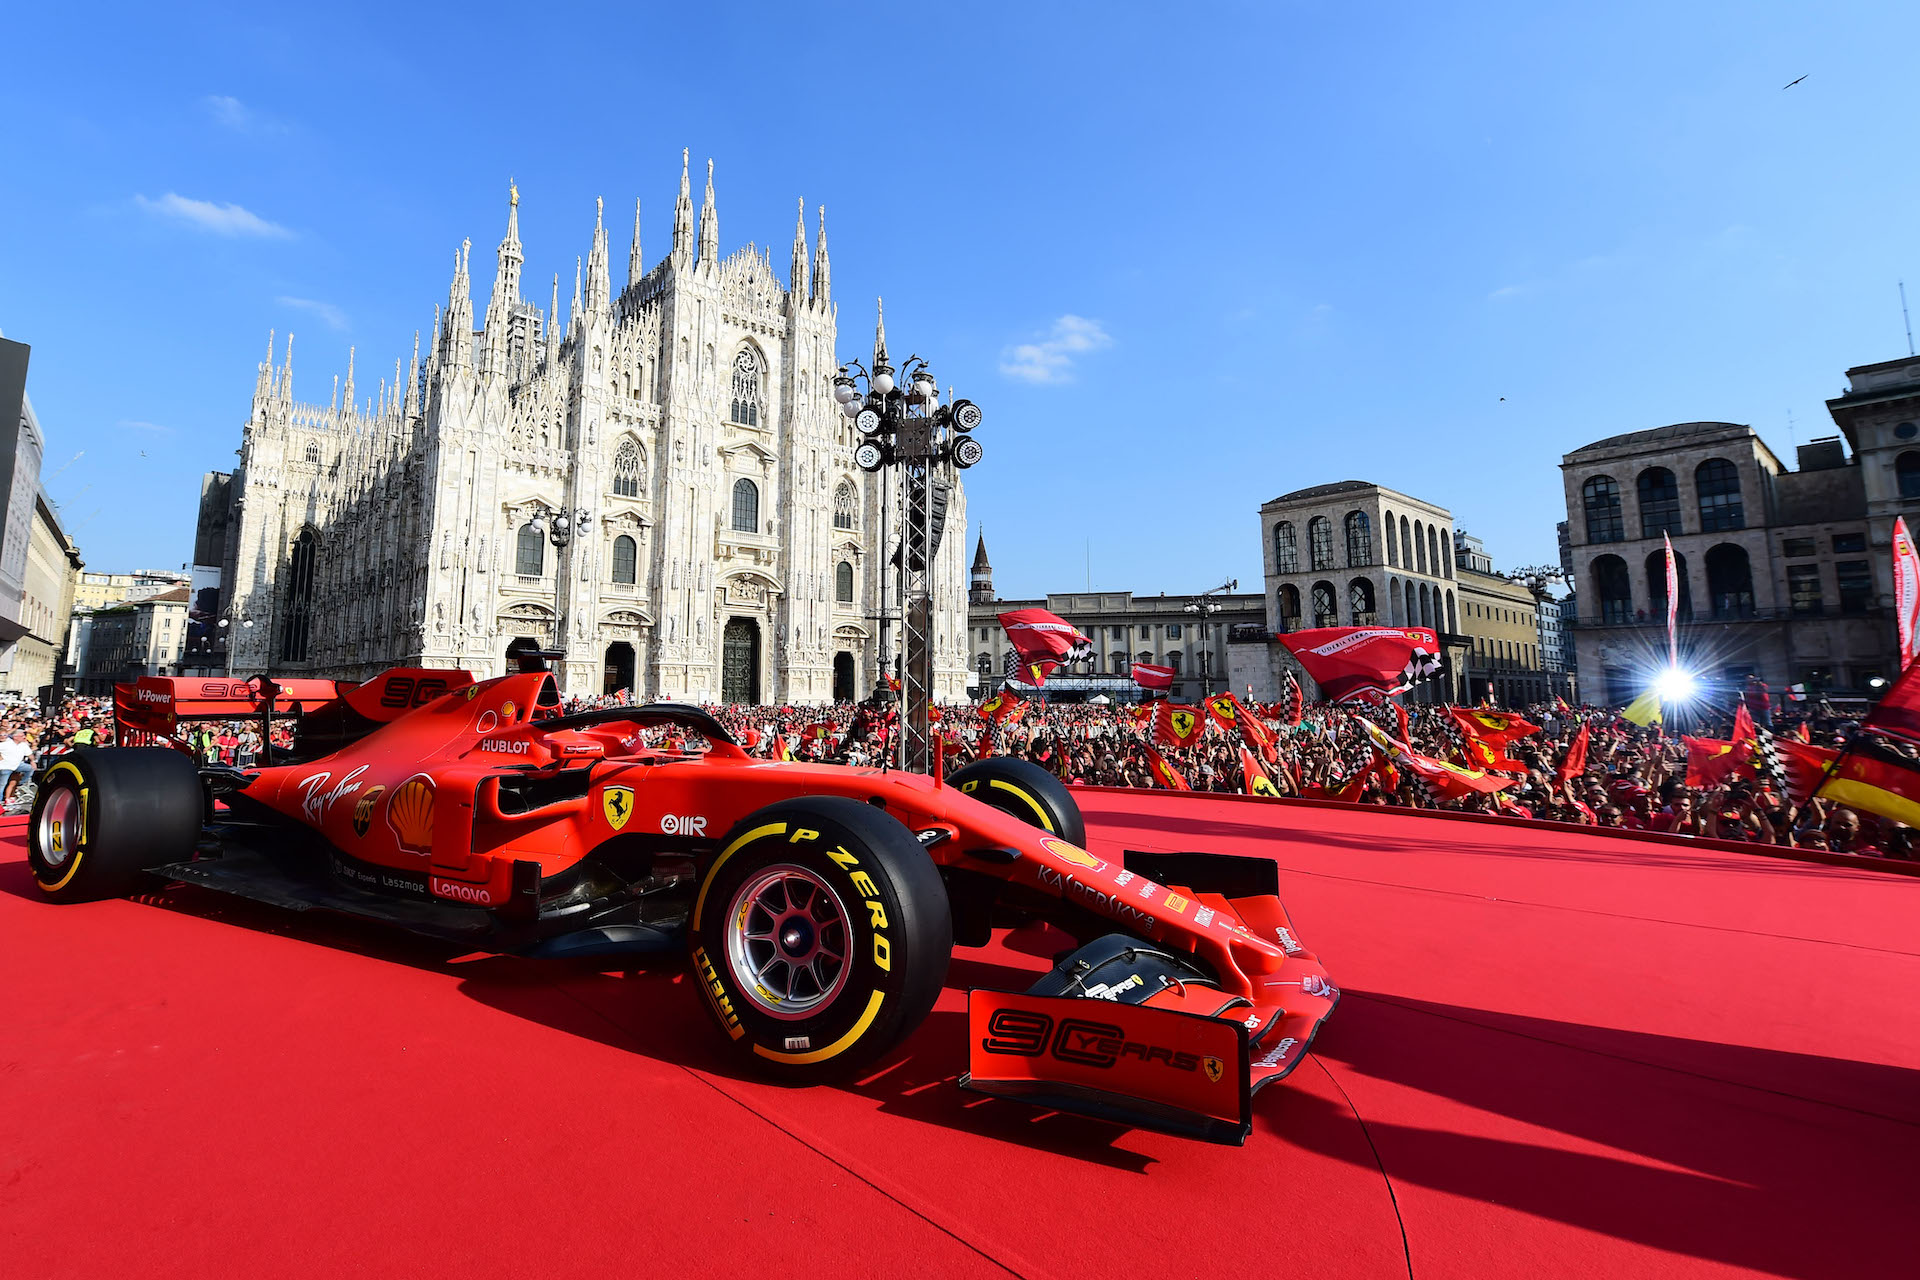 2019 Ferrari 90 Years celebration at Milan | 4 Sept 2019 website 5.jpg